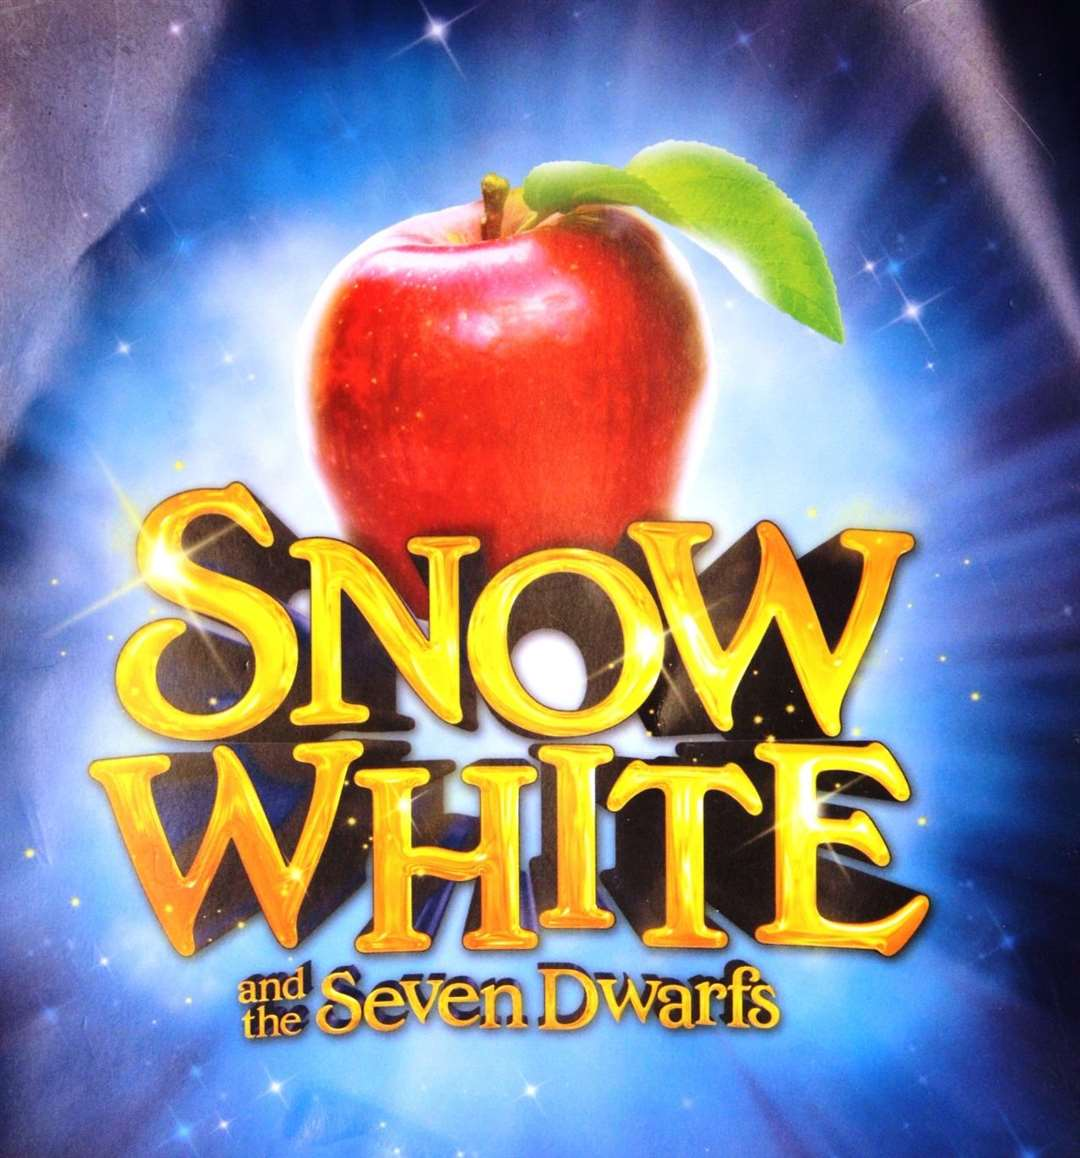 Snow White Maidstone Panto (6204995)